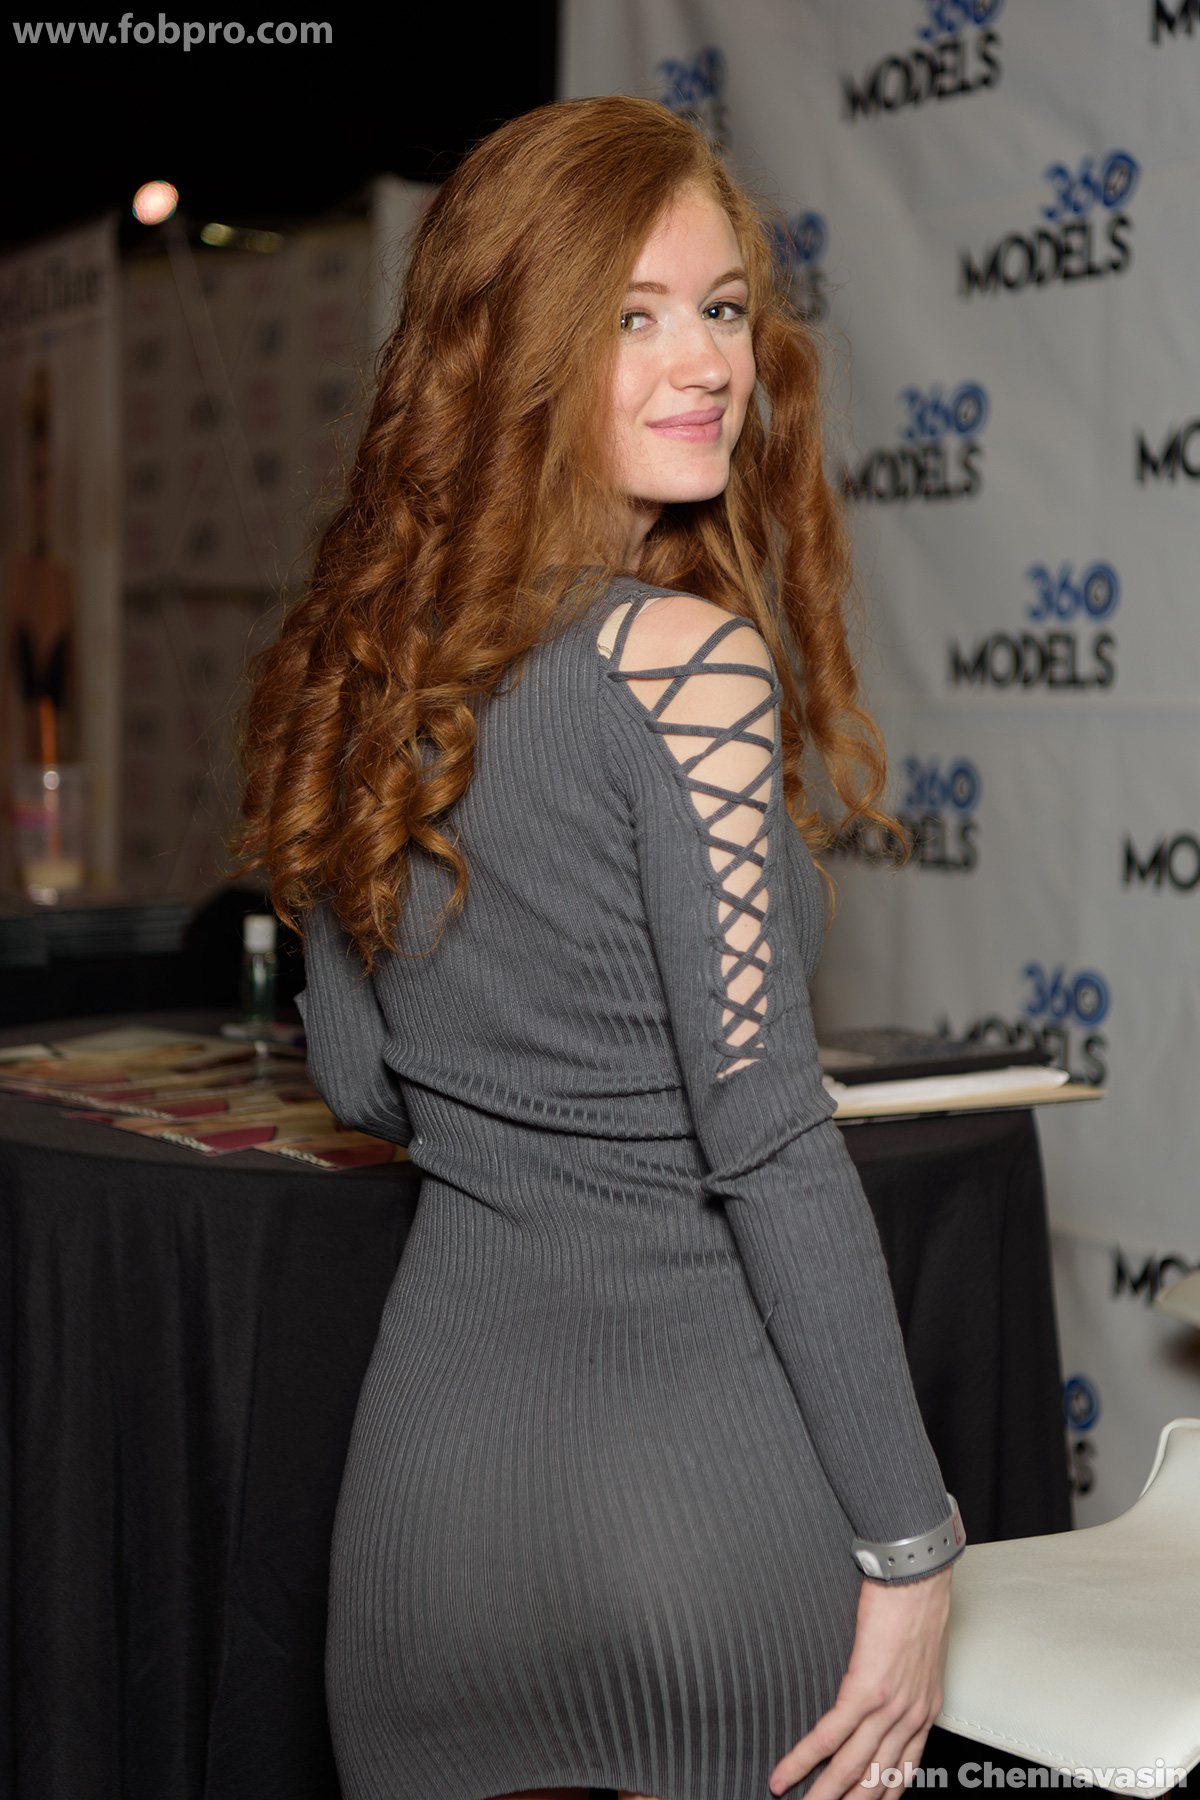 AVN Adult Entertainment Expo 2018 Day 2 (Page 5 of 30